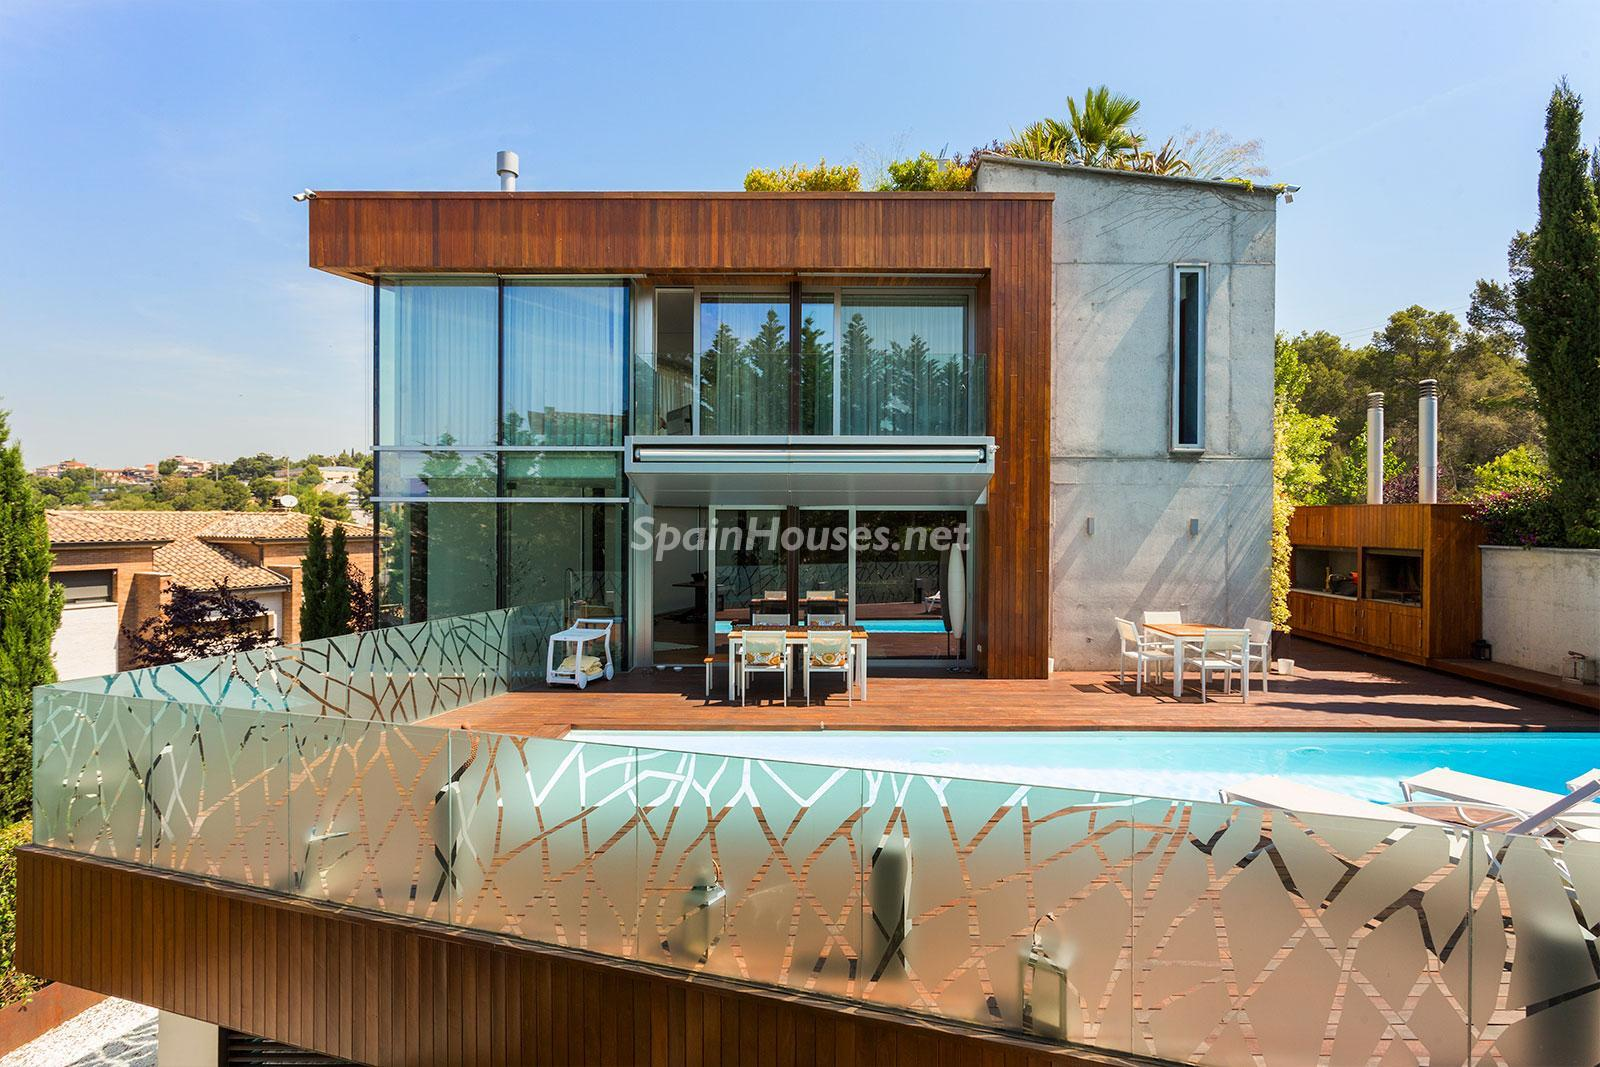 1. House for sale in Barcelona city - Superb 5 bed home in Barcelona features 2 swimming pools and a huge garden